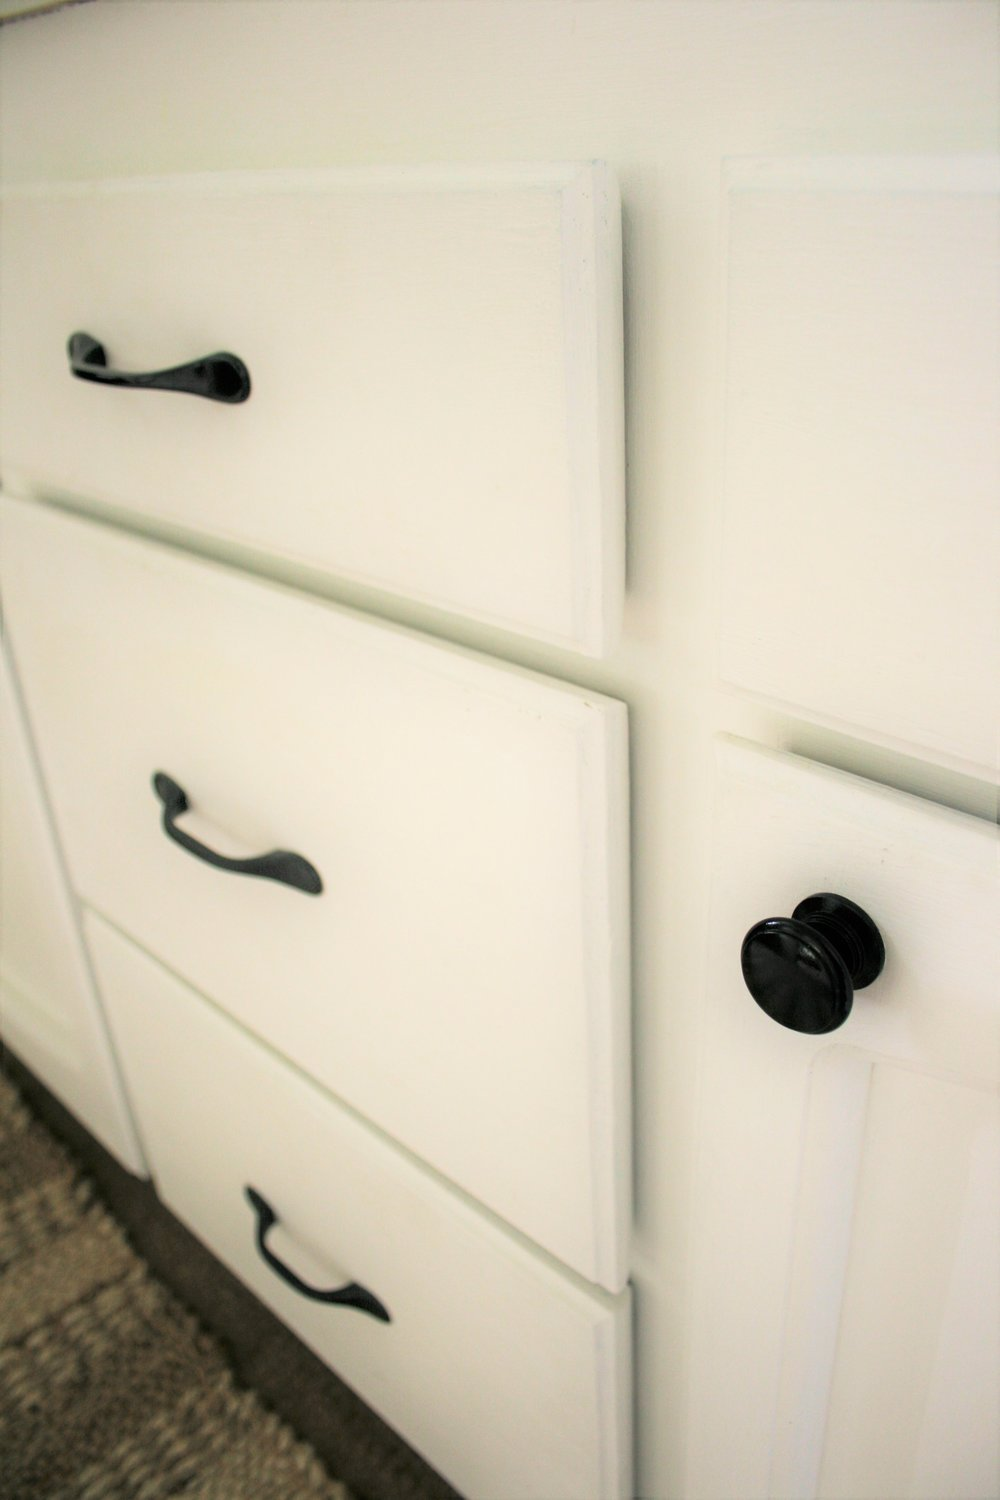 Farmhouse Bathroom Cabinet Hardware | The Little Homeplace